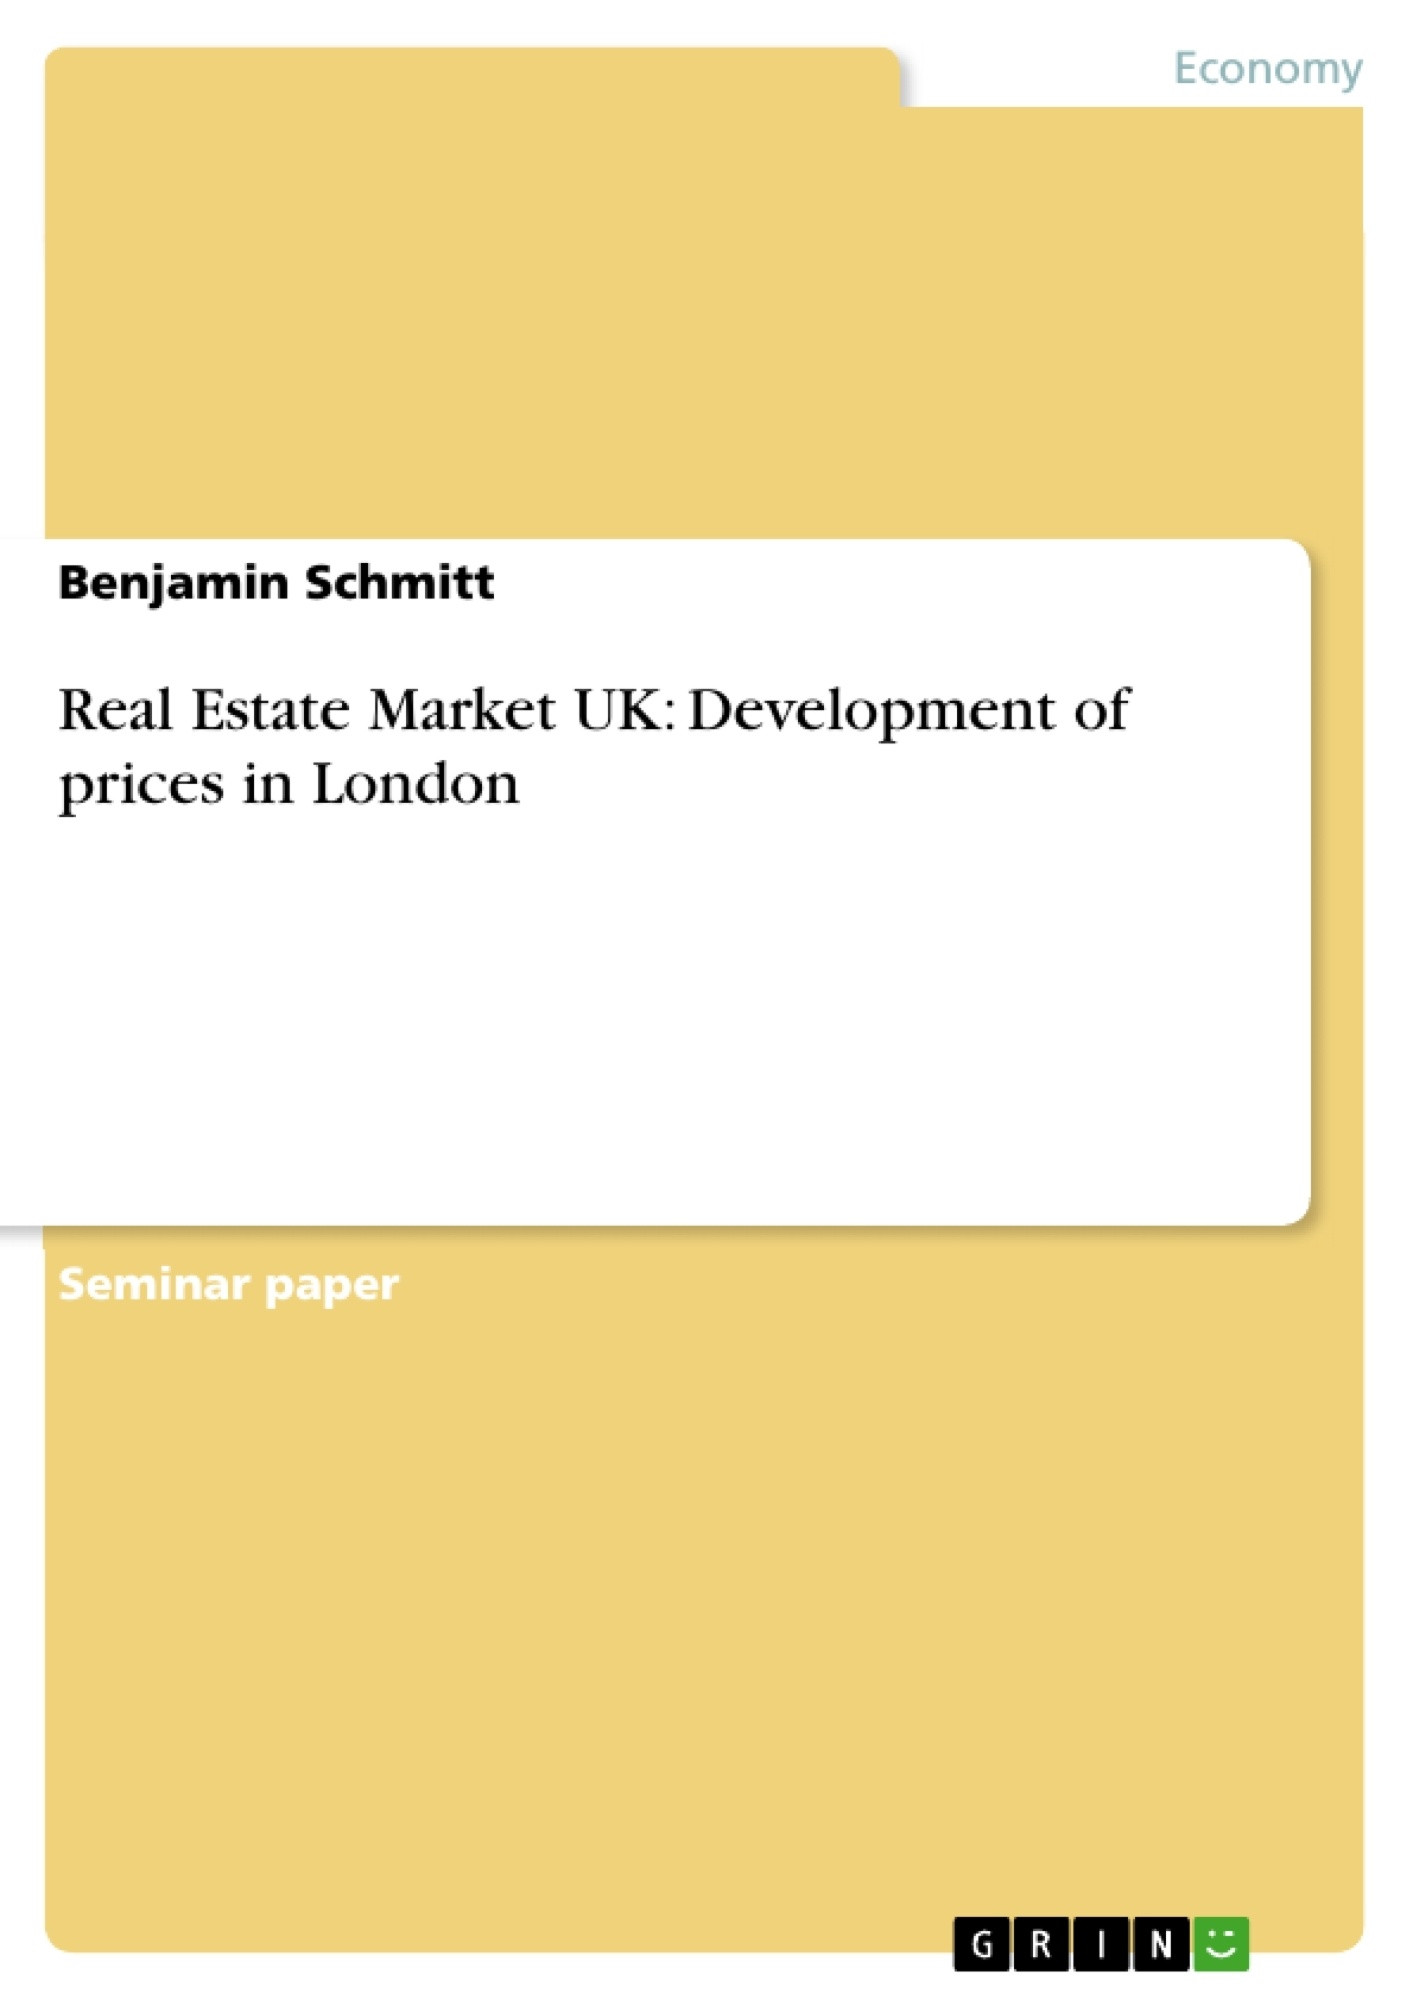 Title: Real Estate Market UK: Development of prices in London